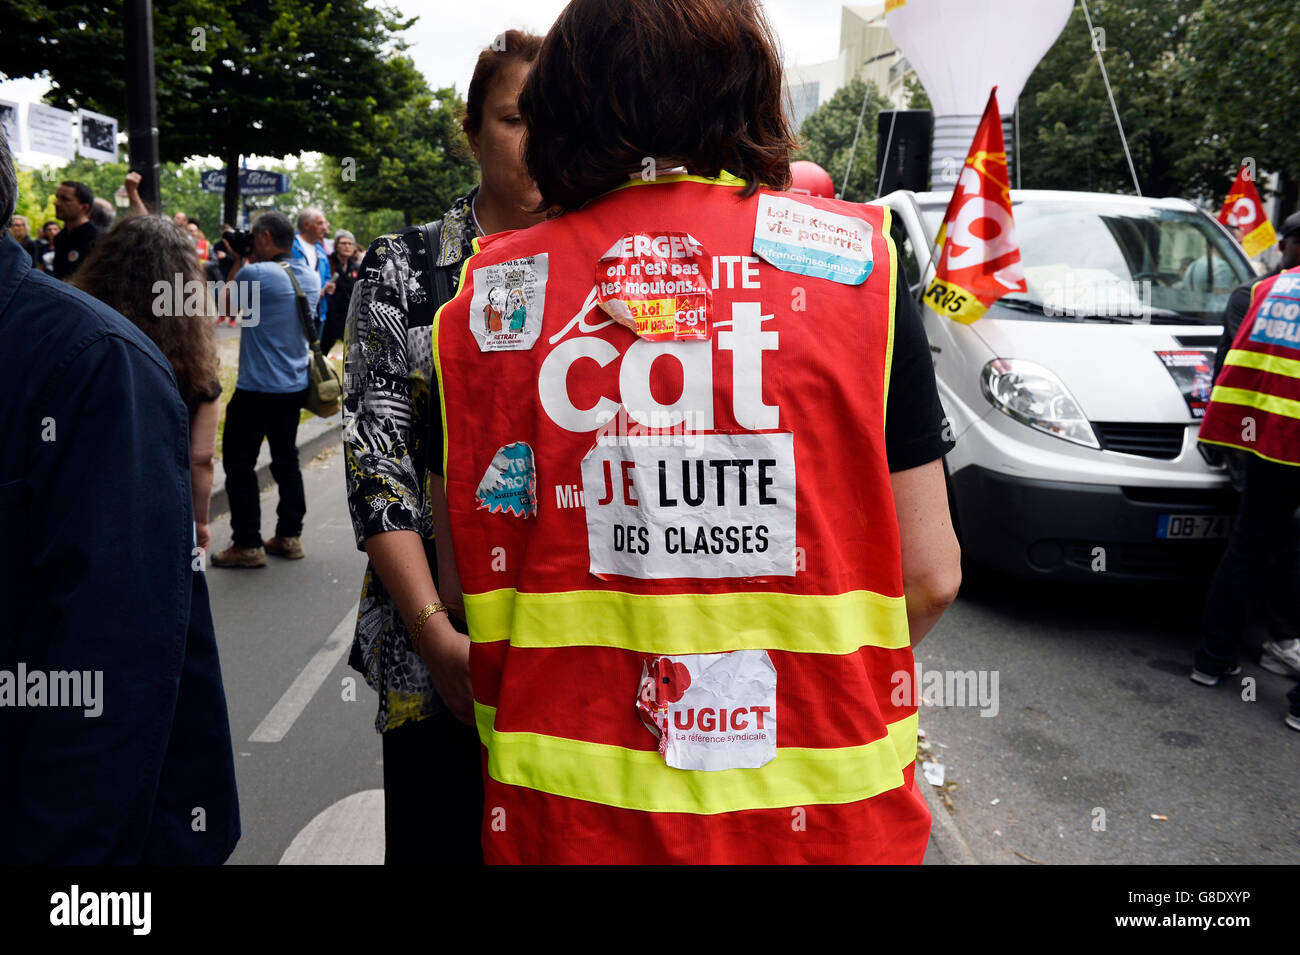 March against labour law in Paris on 28th of june 2016 - Stock Image